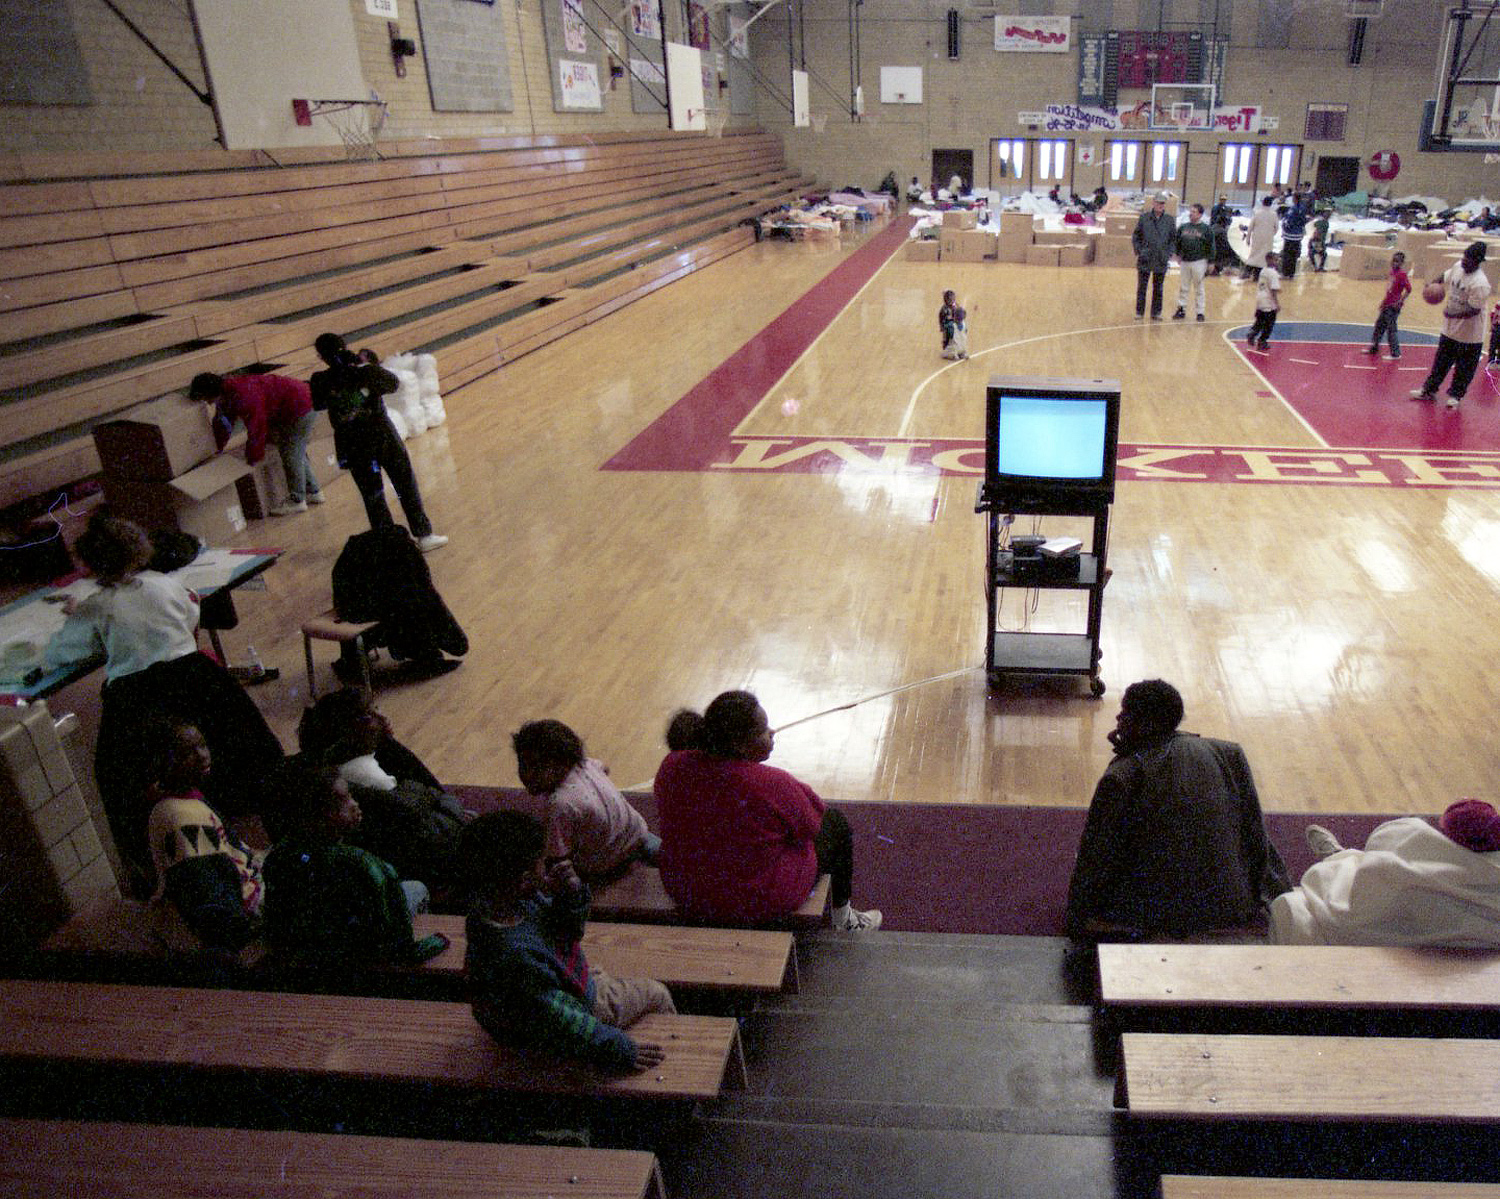 Some people sought shelter in a McKeesport gymnasium. (Annie O'Neill/Post-Gazette)